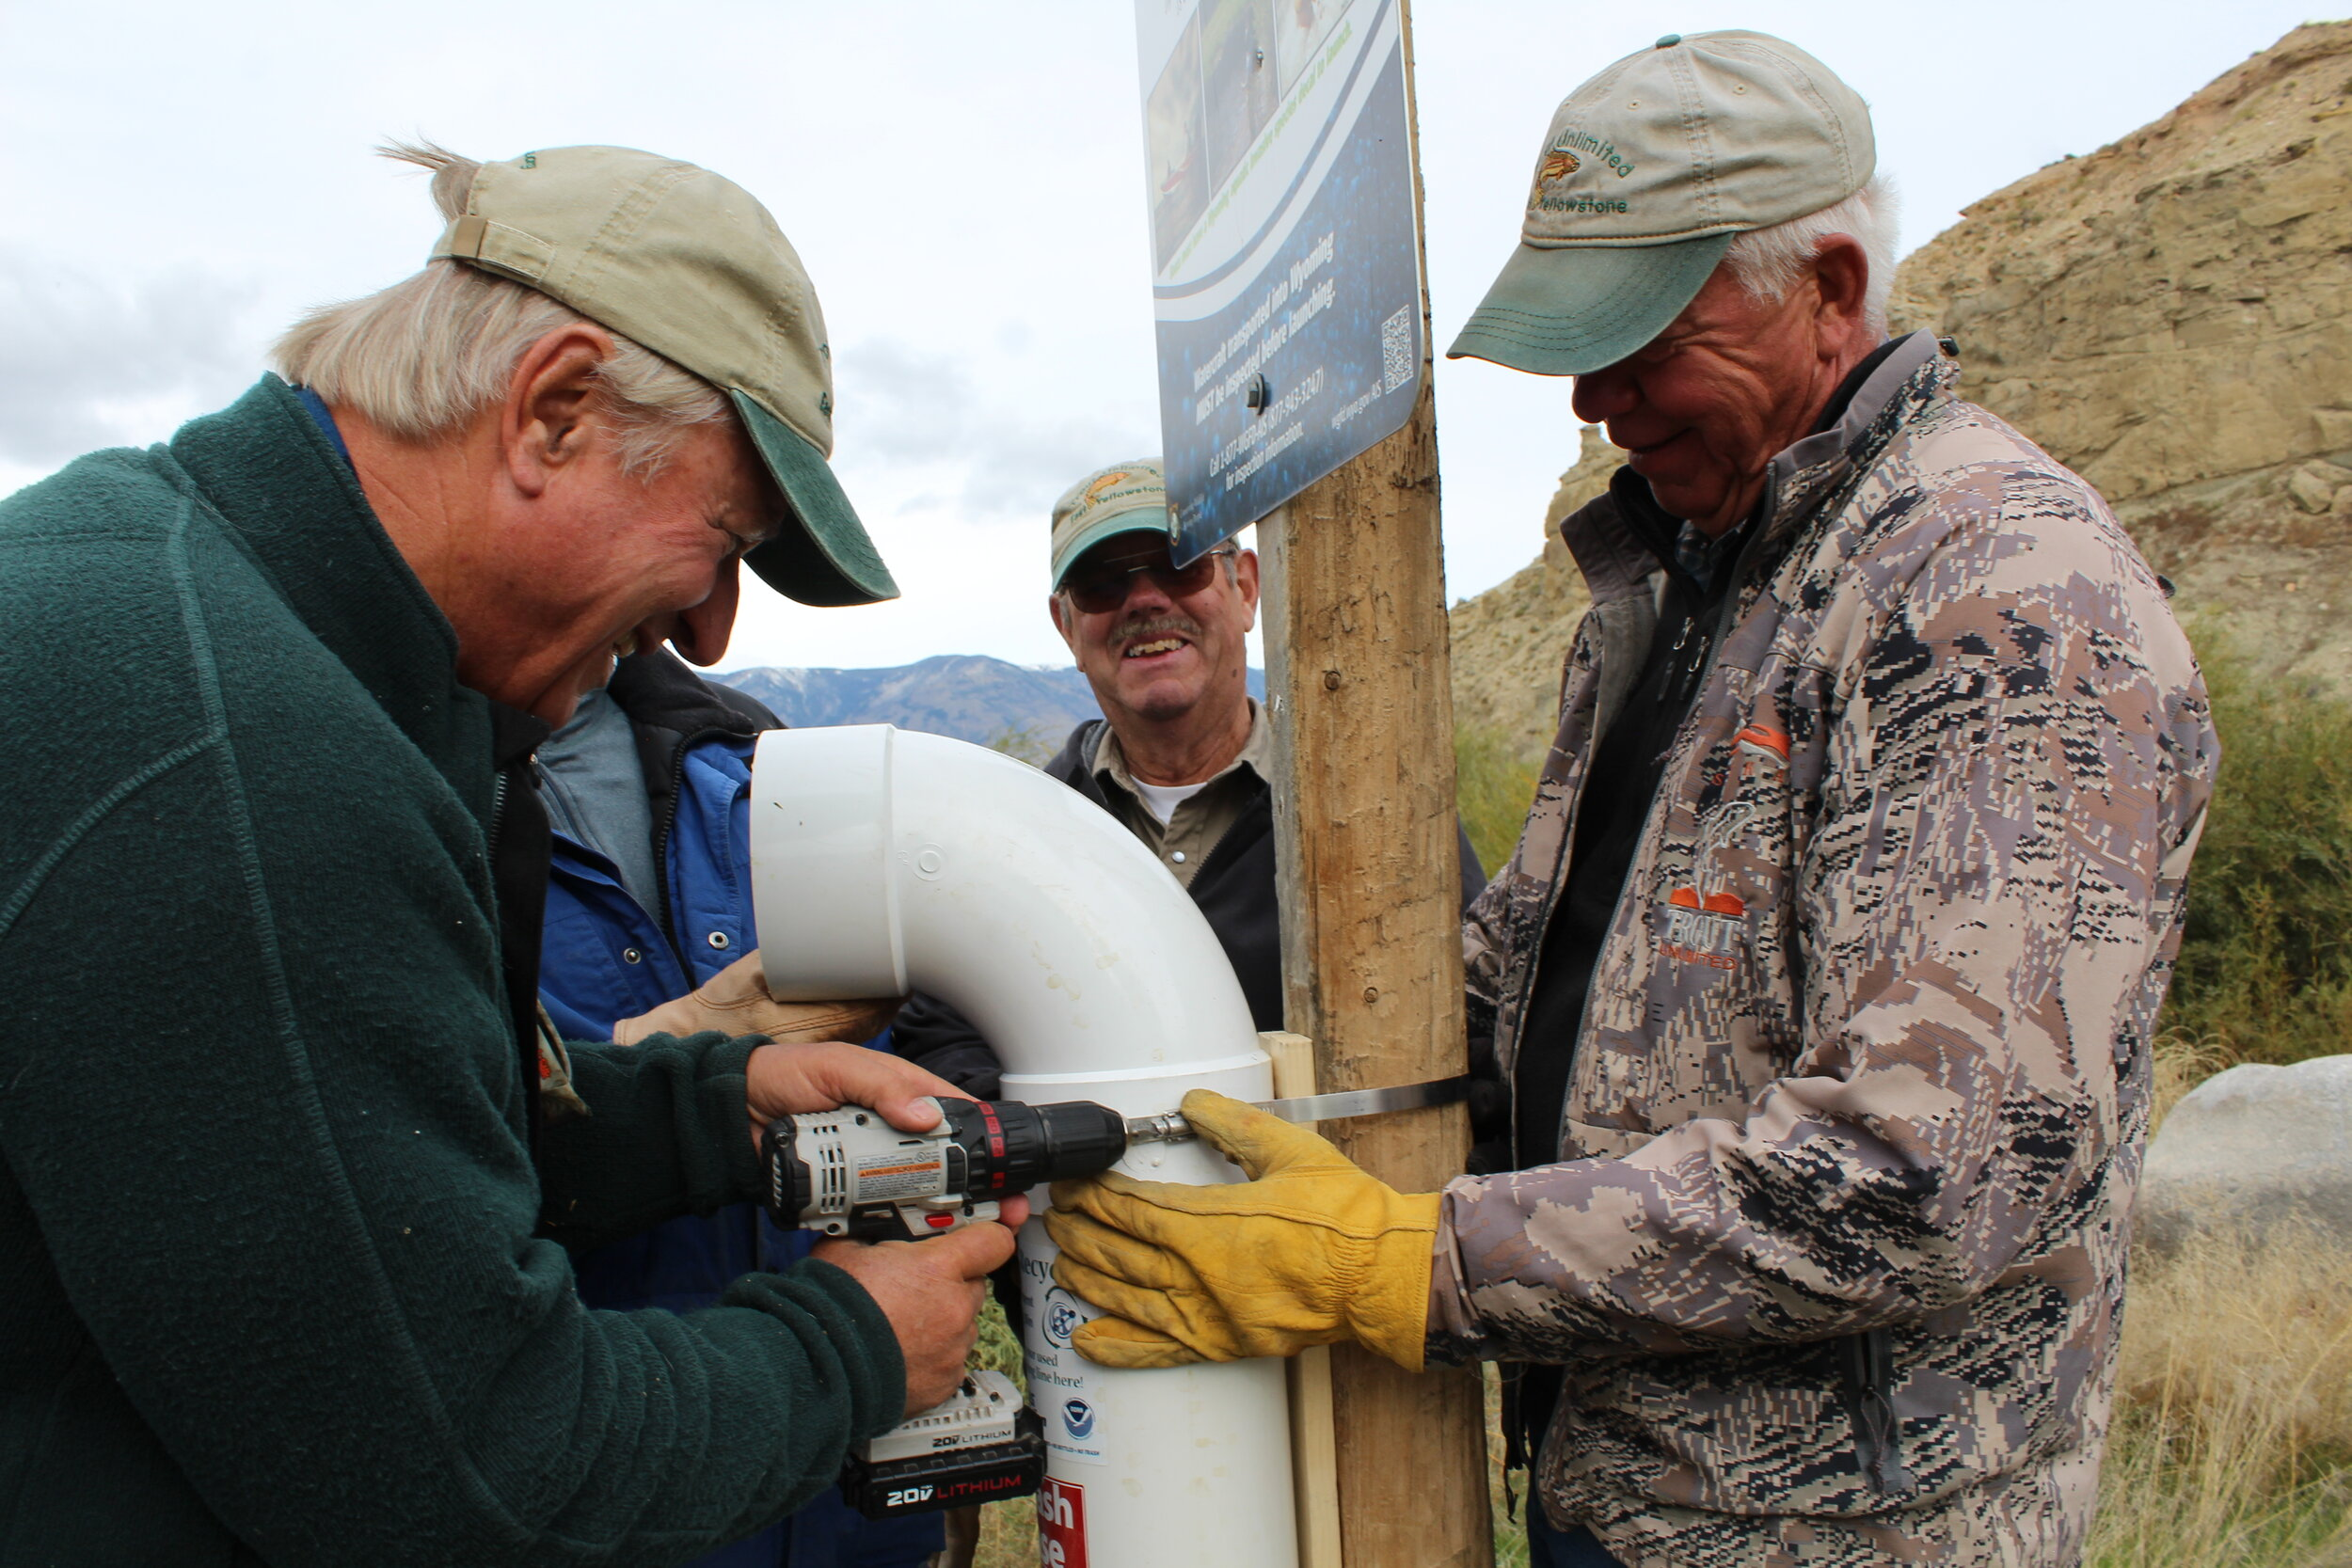 Volunteers install a  microfilament recycle station, which allows for people to properly dispose of used fishing line.  (Photo GYC/Emily Reed.)